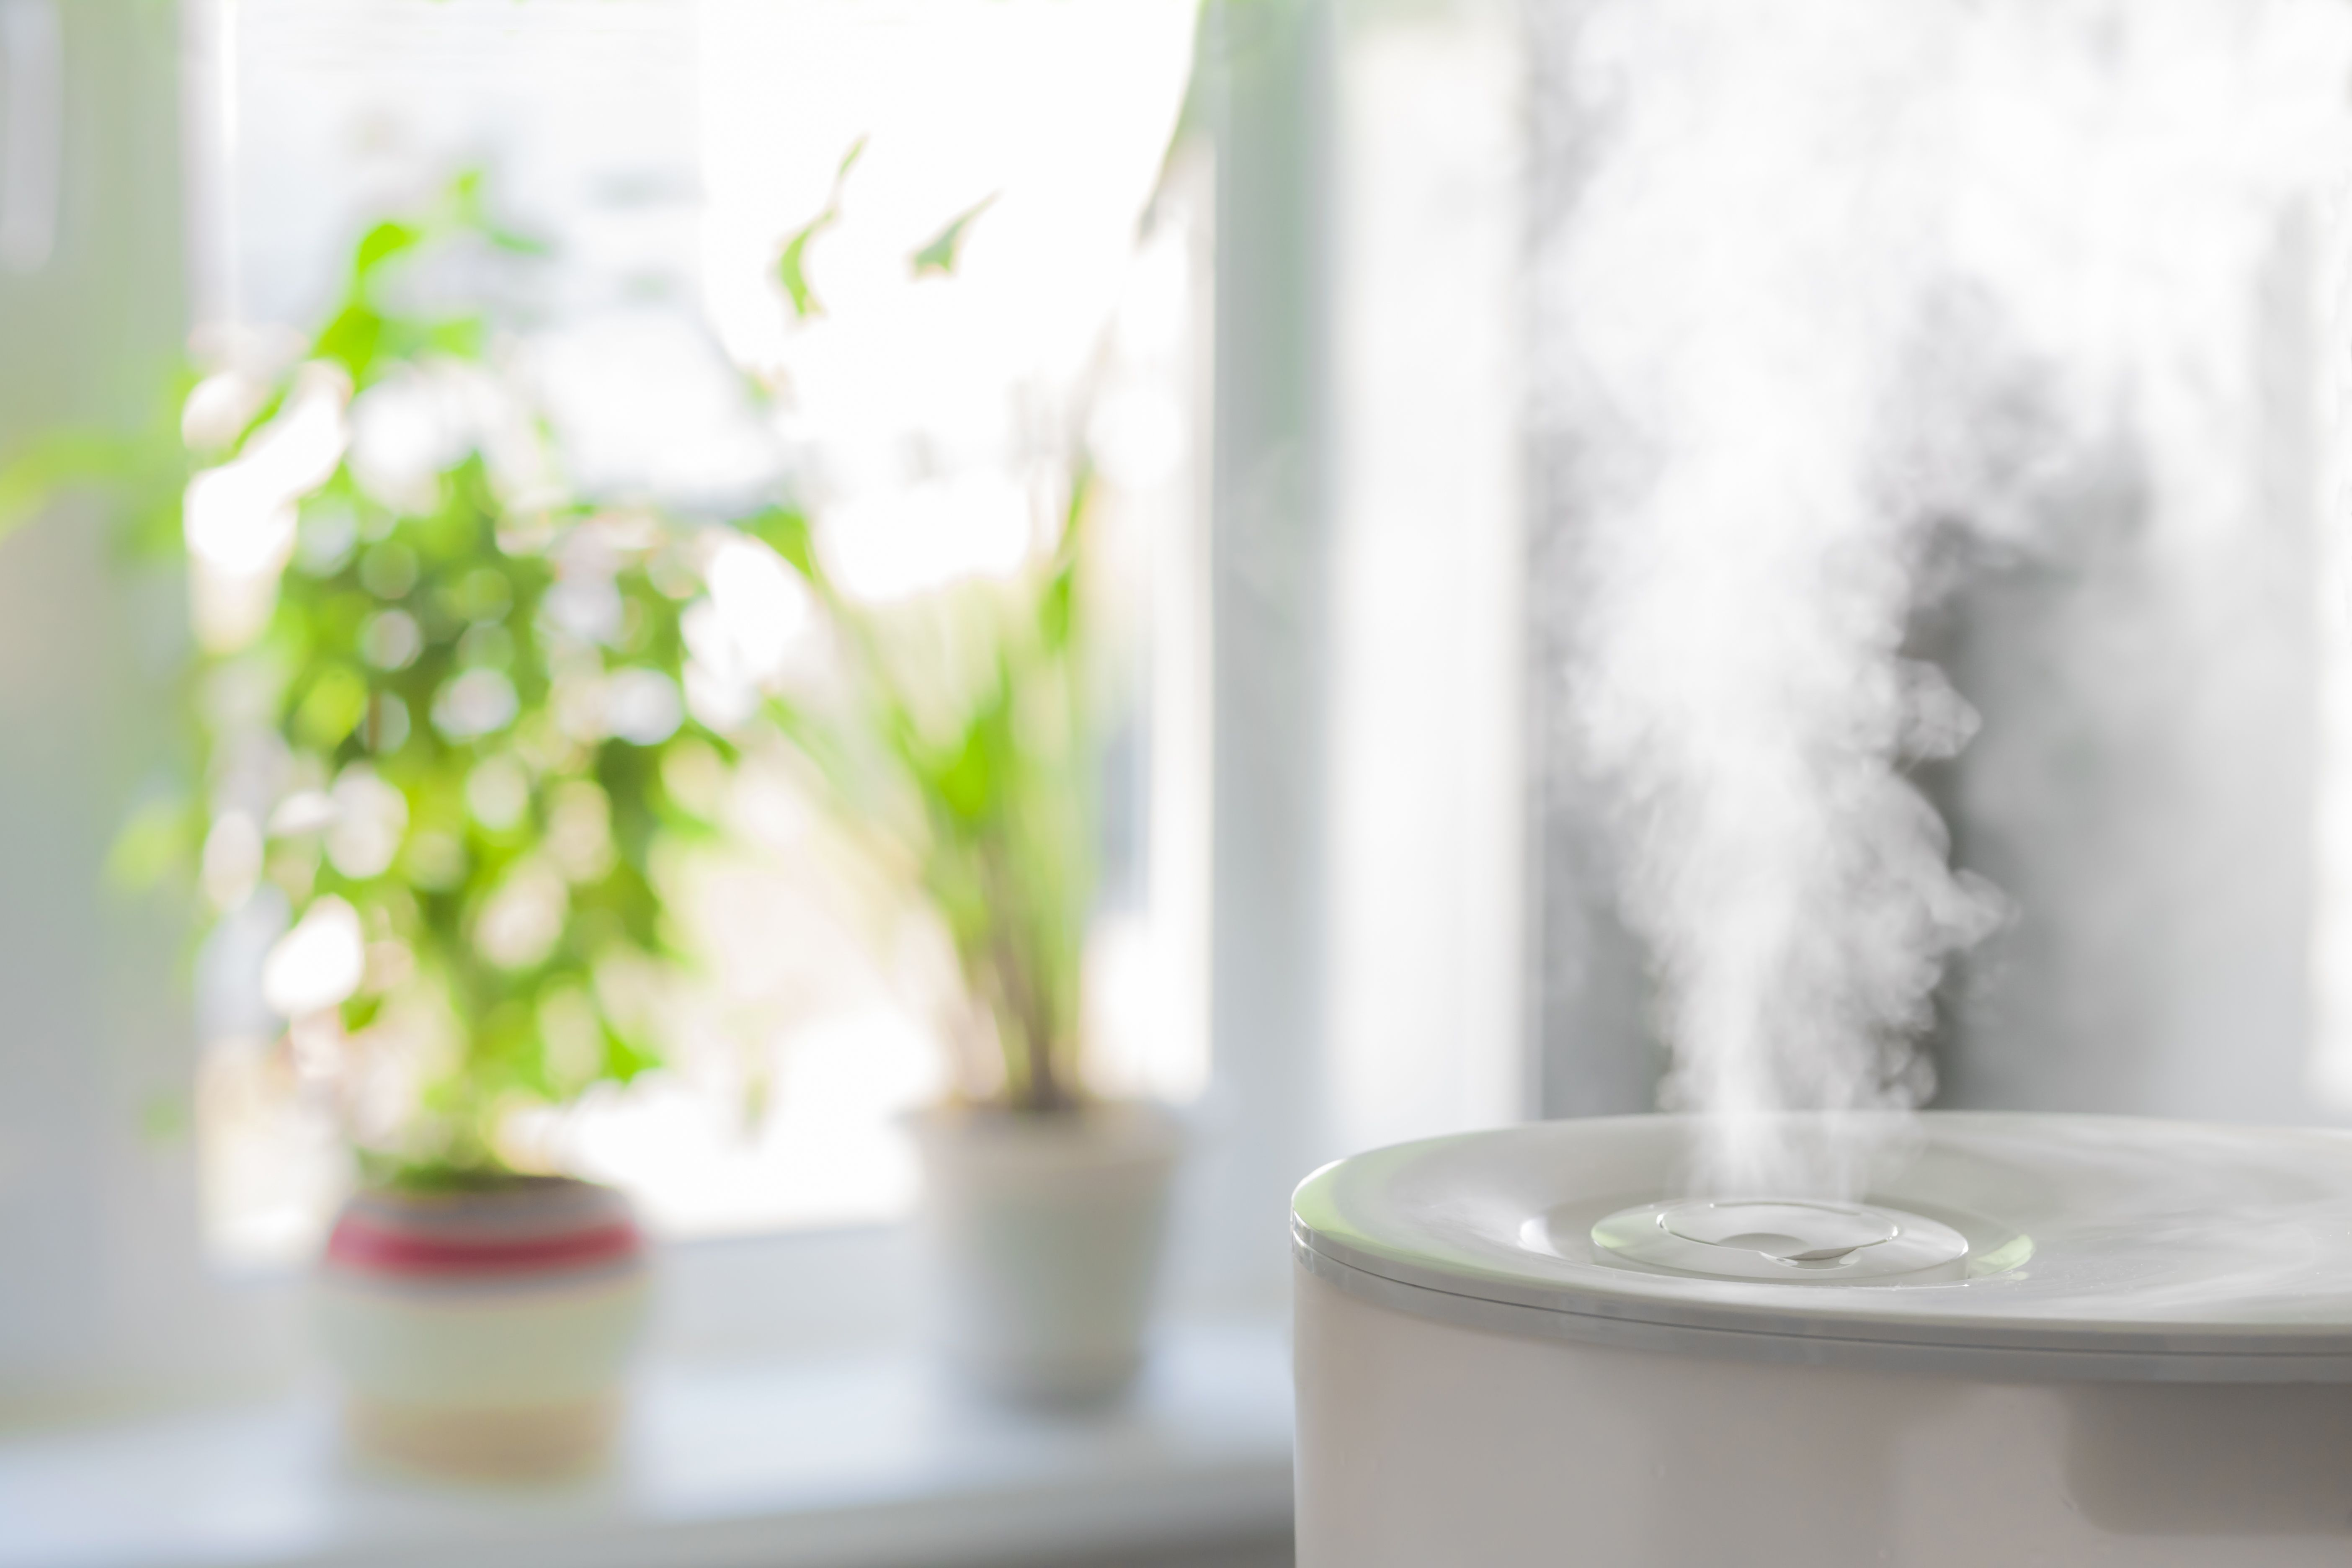 The 7 Best Humidifiers On Amazon, According To Reviews